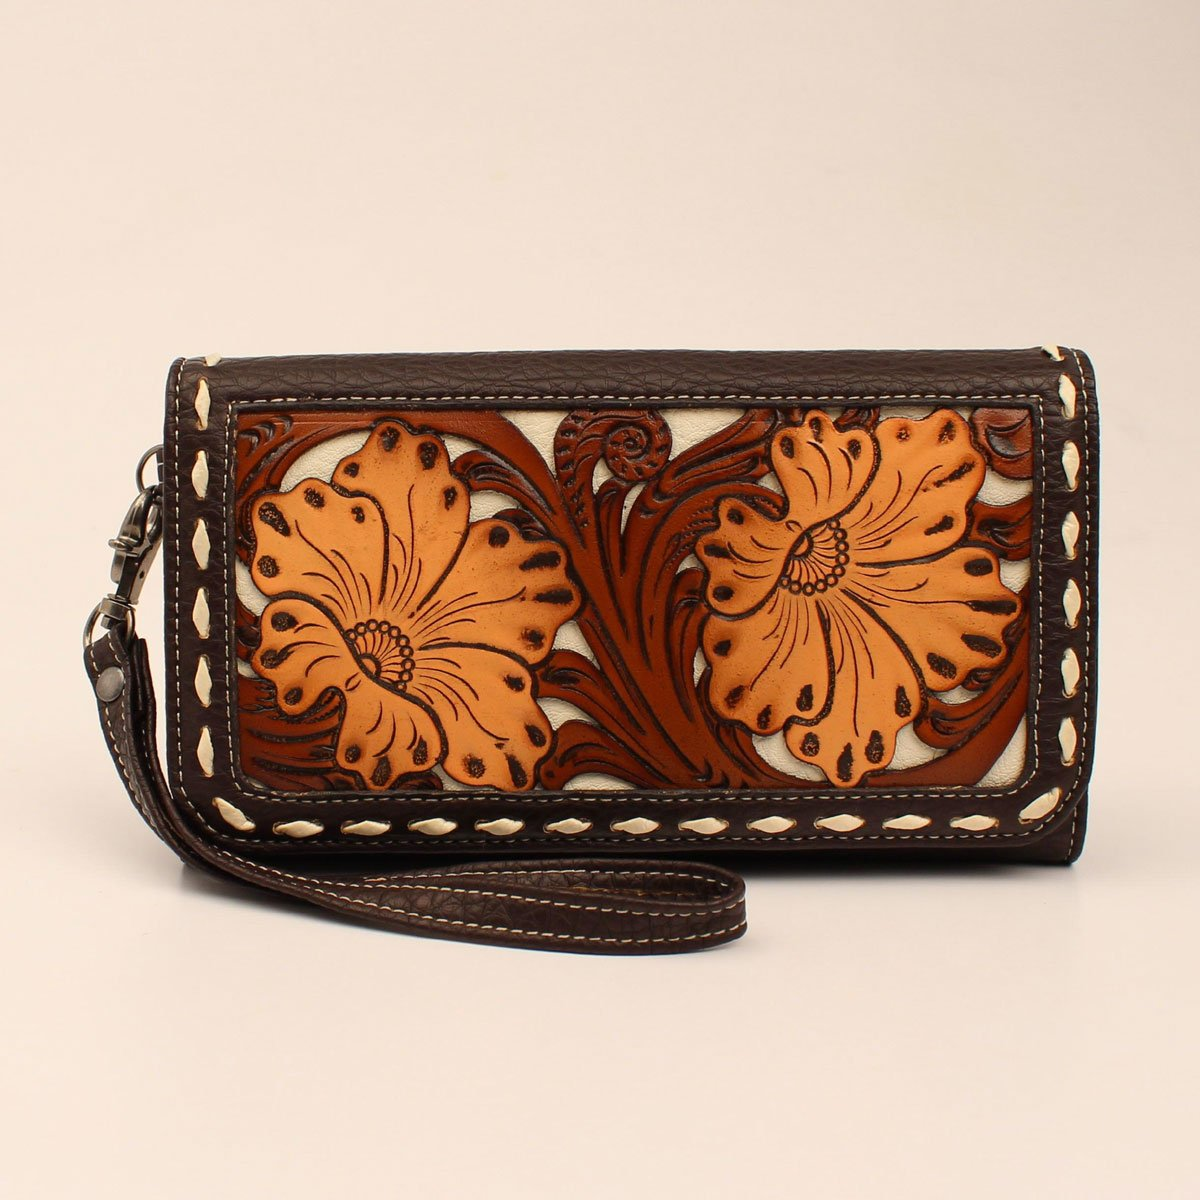 Clutch Foldover Wallet with Floral Tooled Front